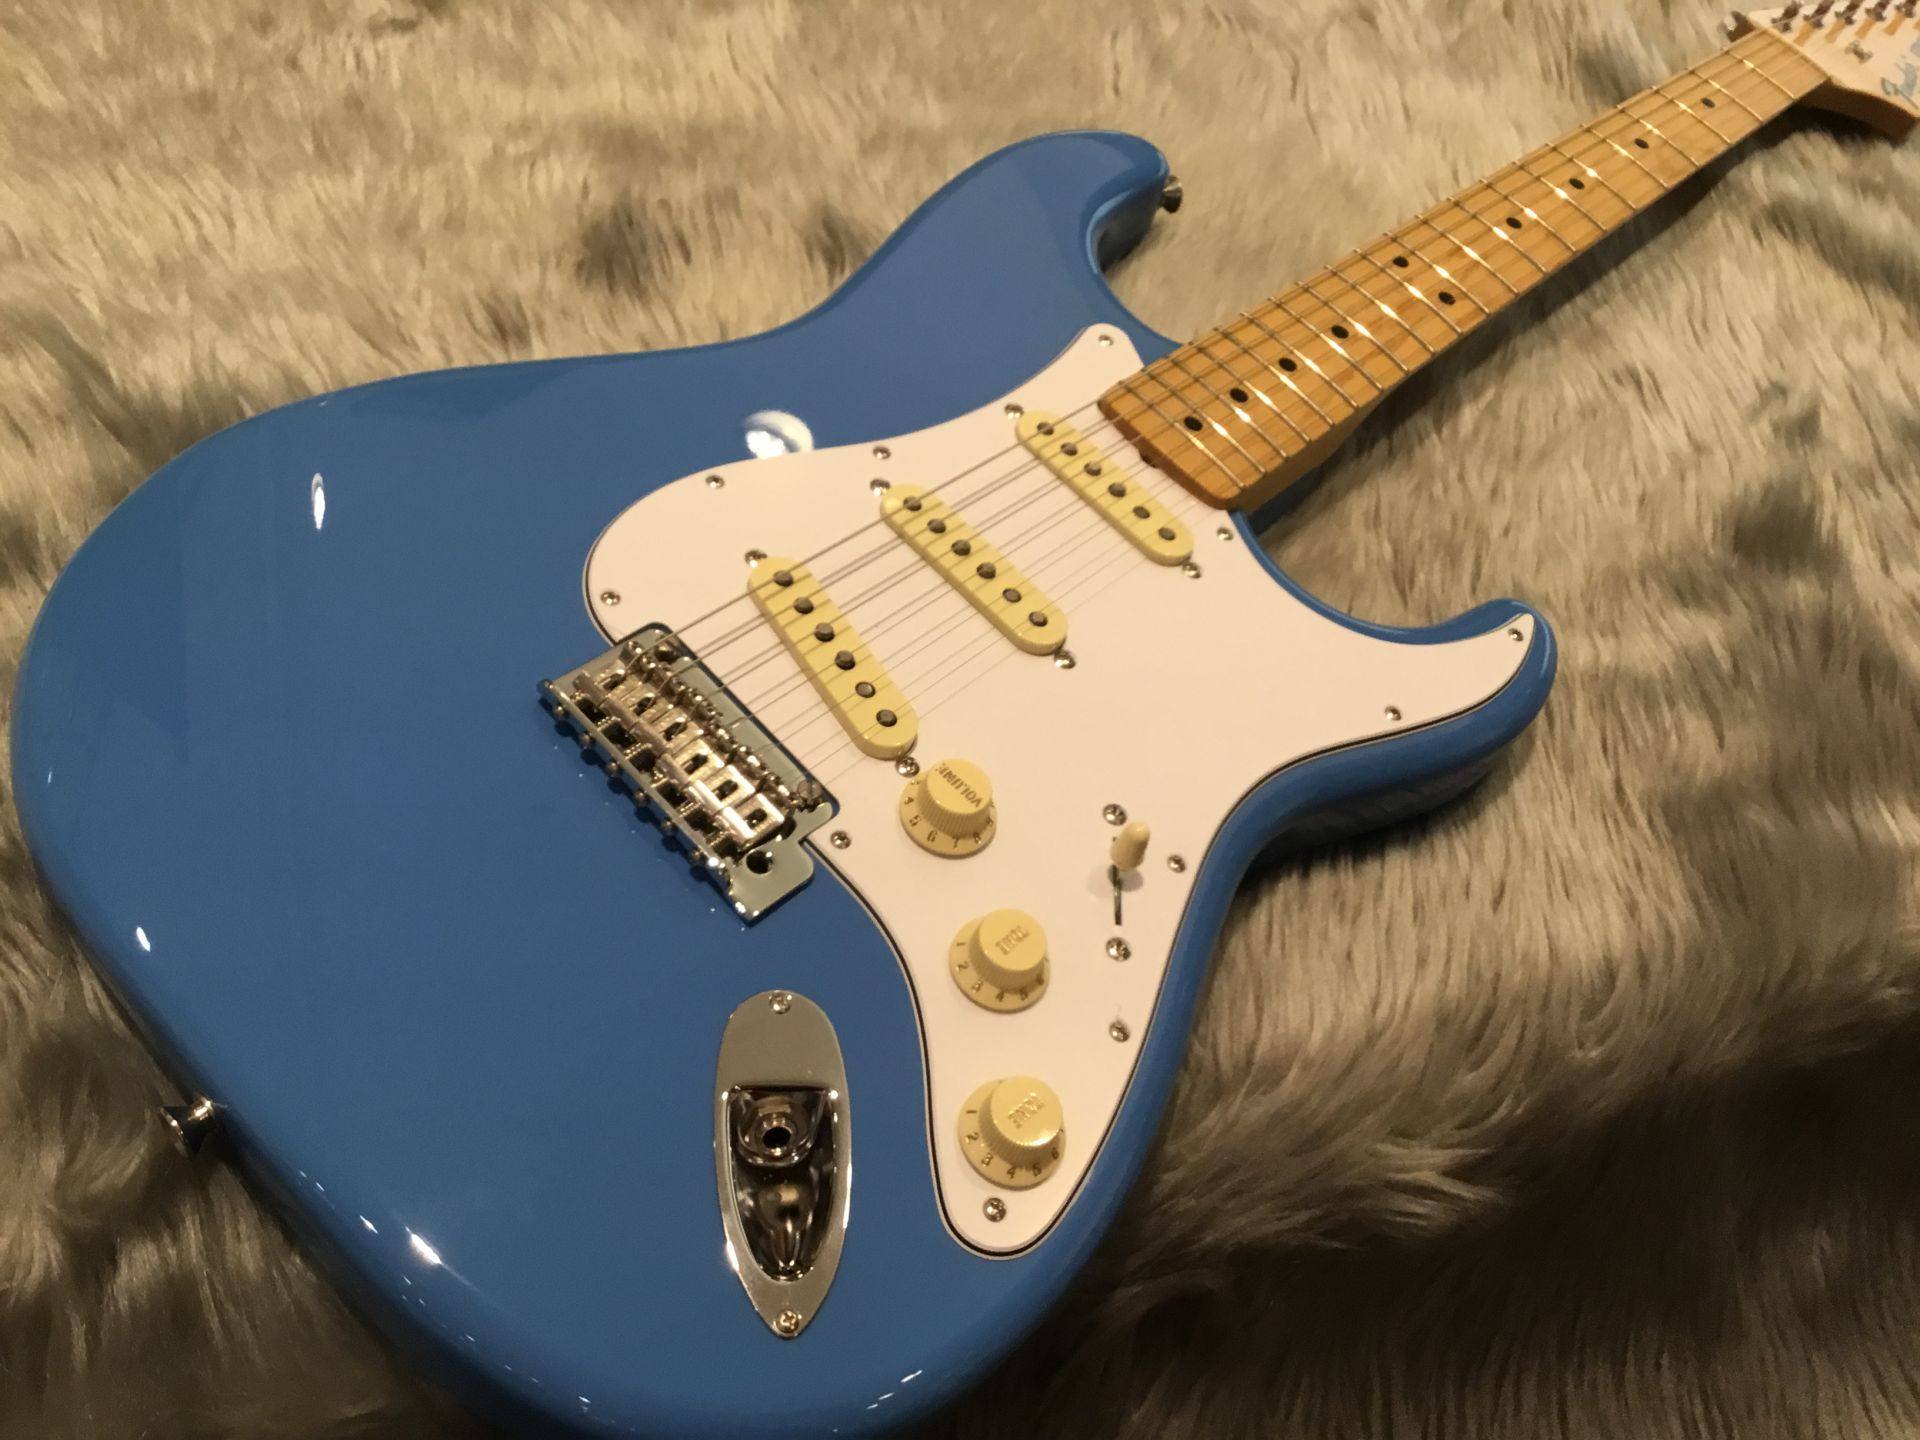 MADE IN JAPAN HYBRID 68 STRATOCASTER